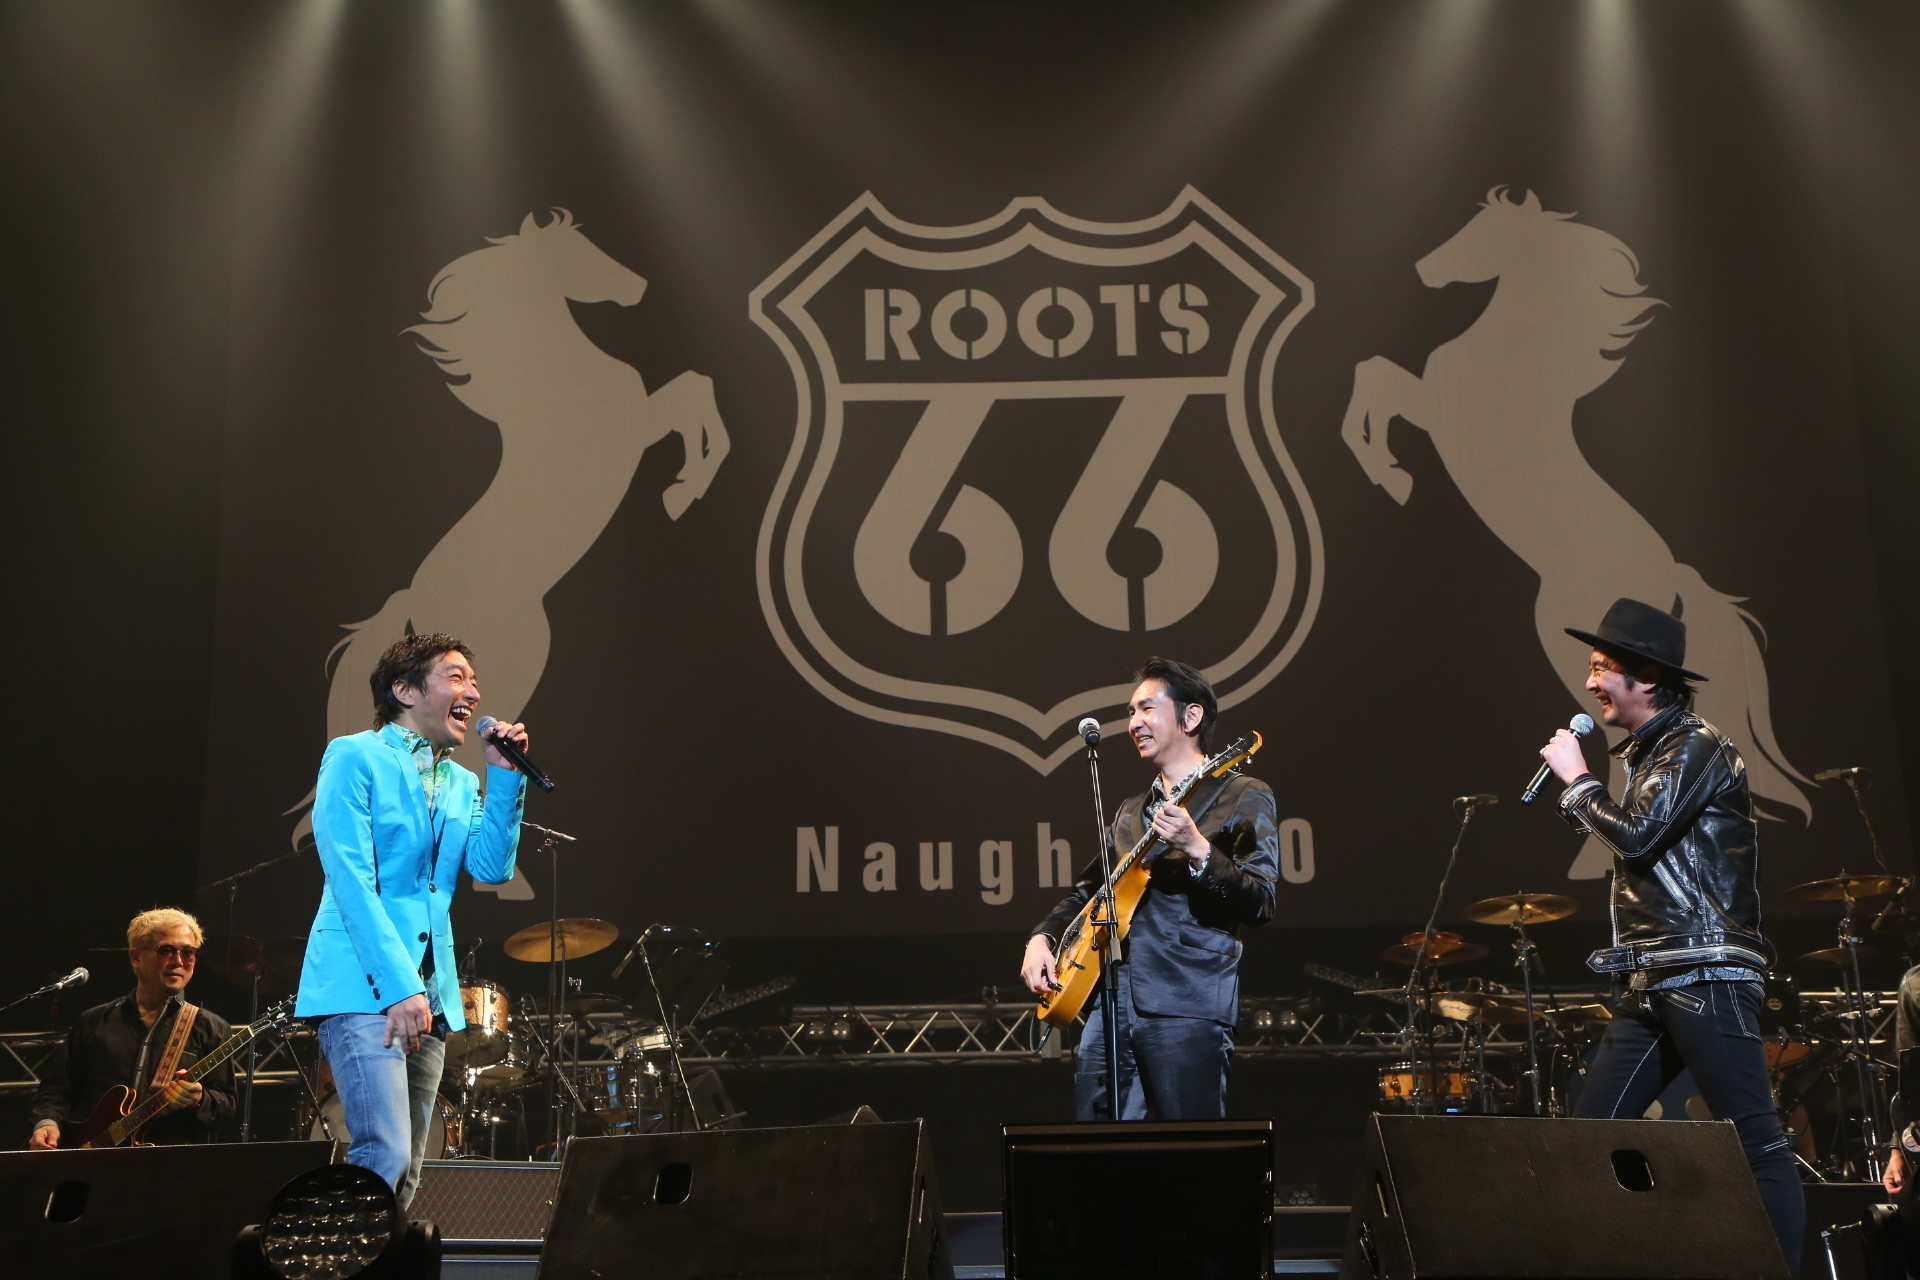 ROOTS66